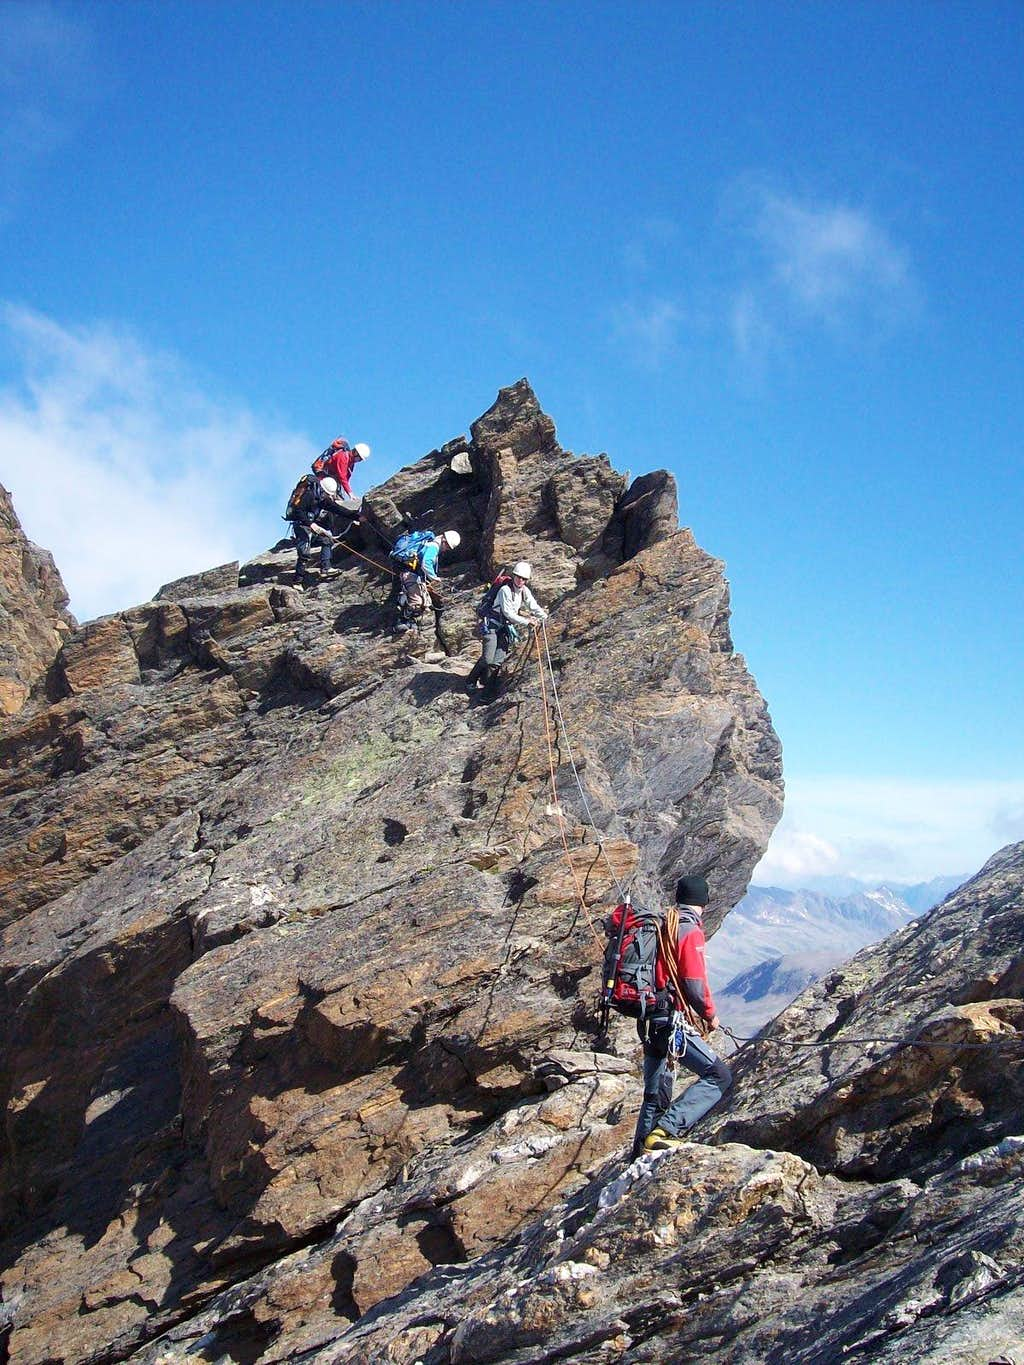 On the traverse of the Hohe Wilde